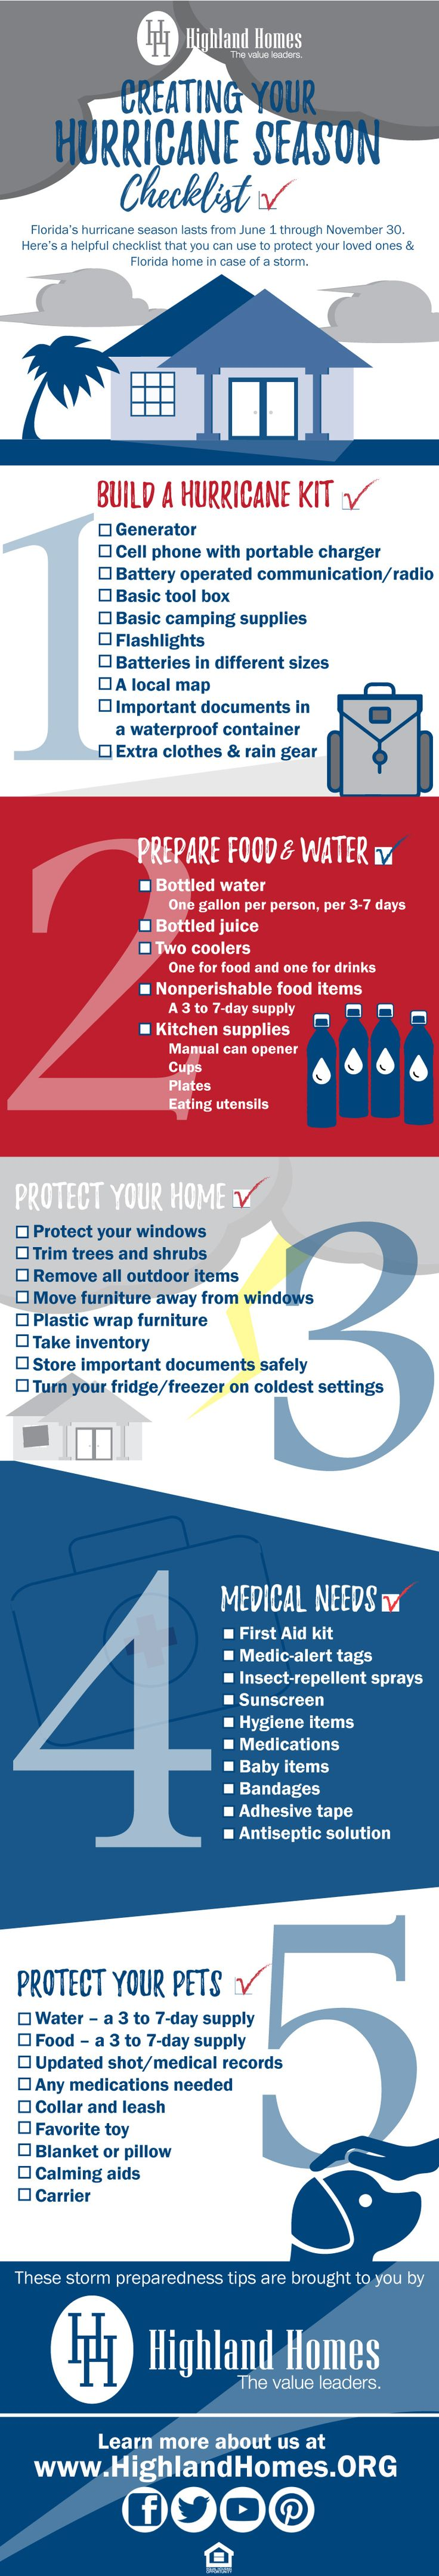 Florida's hurricane season lasts from June 1 through November 30. Whether you're new to the Sunshine State or you've weathered a Florida hurricane or two in the past, proper preparation is key to your safety and to protect your family and property. Here's a helpful checklist that you can use to protect your loved ones and Florida home in case of a storm.